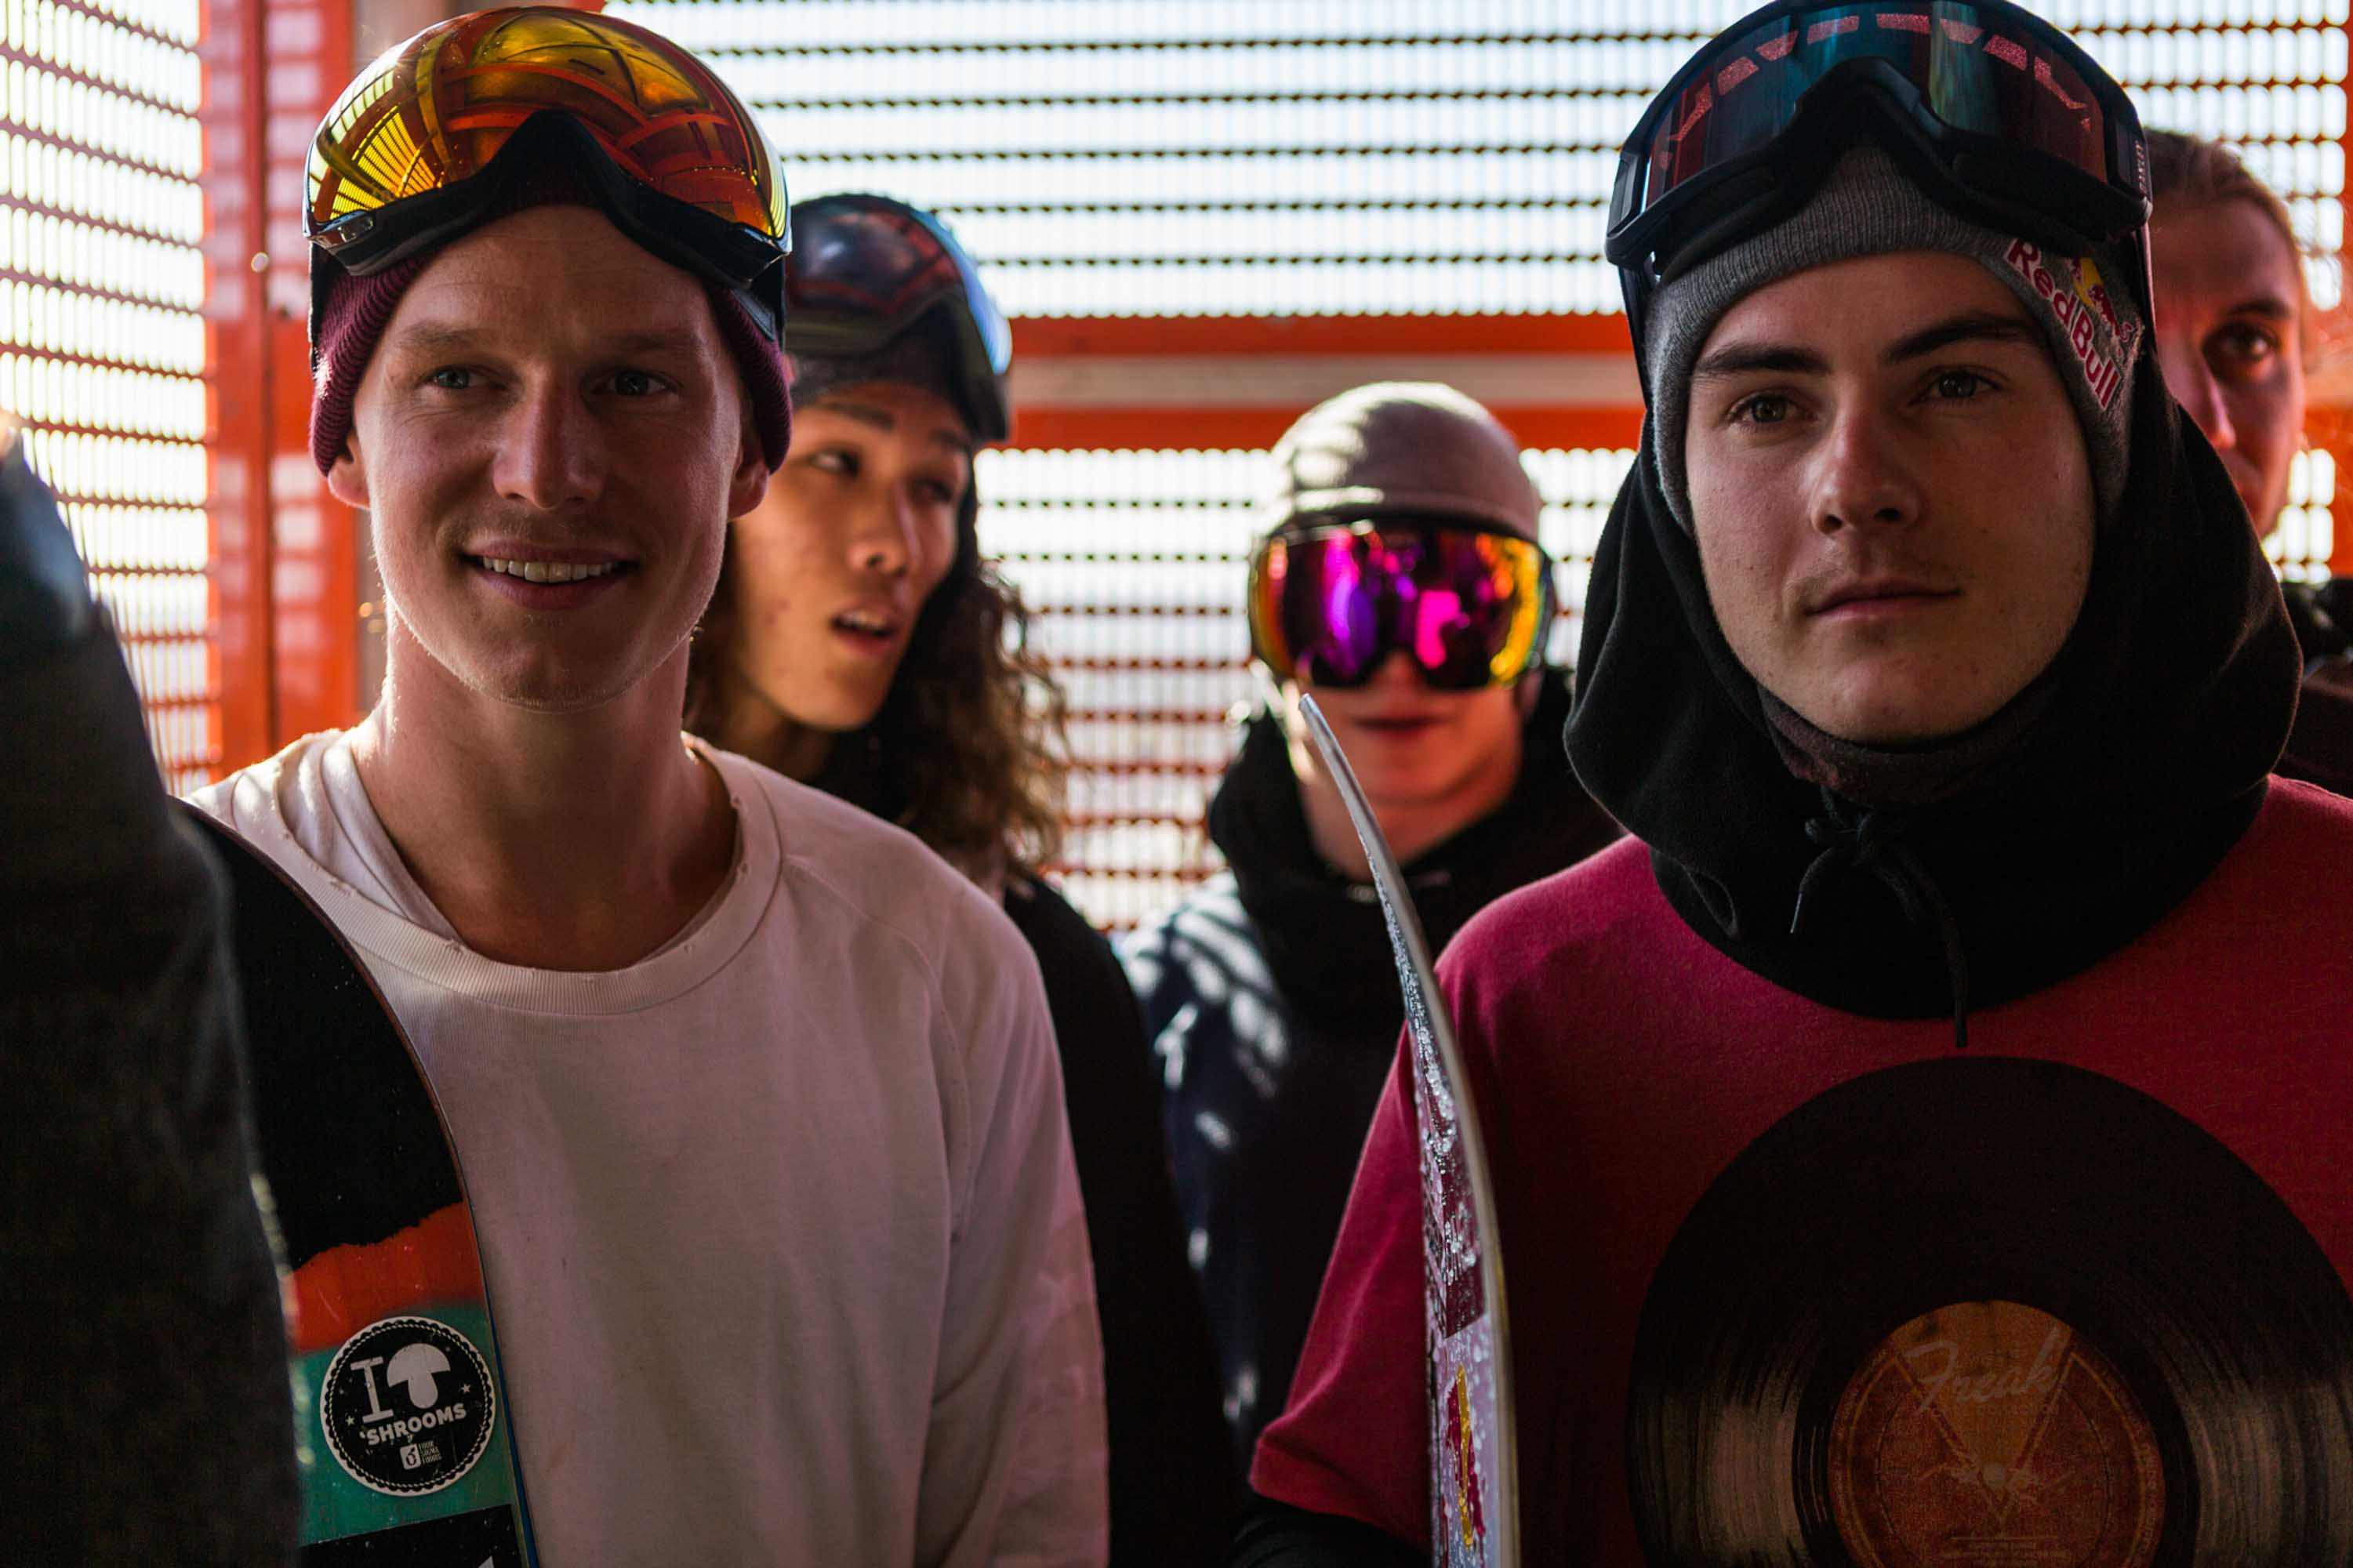 Riders take the elevator to the top of the ramp at Air + Style, held at EXPO Park at the Coliseum in Los Angeles, CA, USA on 20 February, 2016.